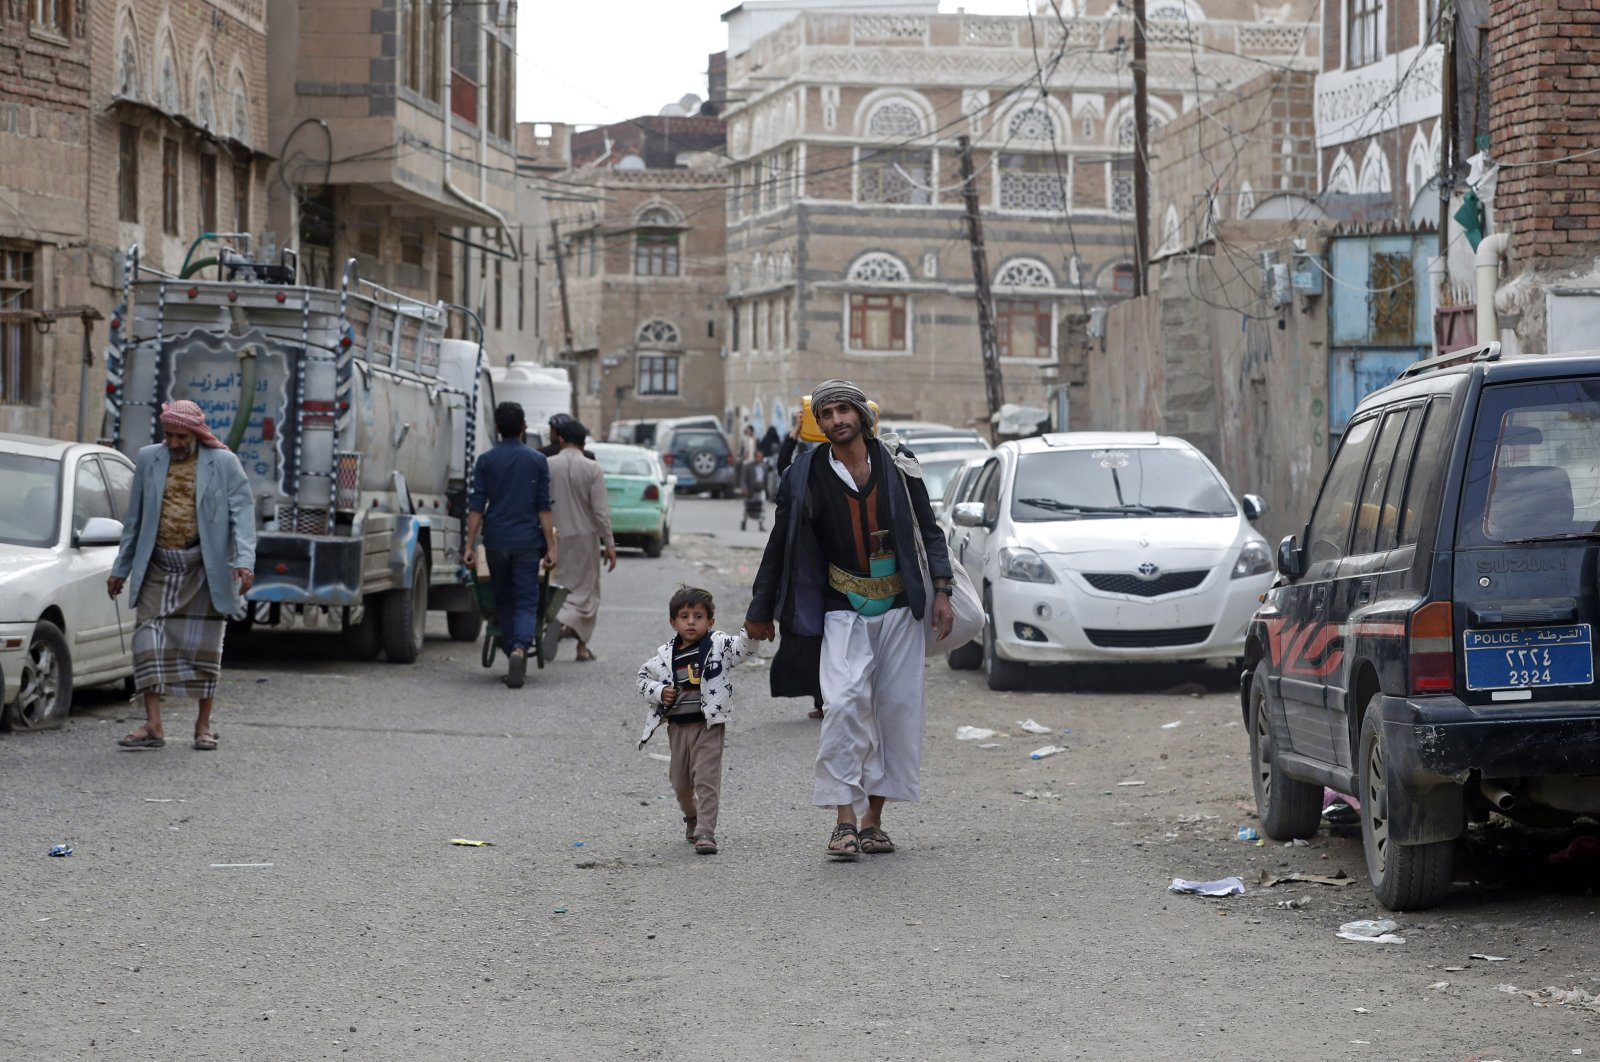 Yemenis walk through a street amid the ongoing coronavirus COVID-19 pandemic, Sanaa, May 15, 2020. (EPA Photo)